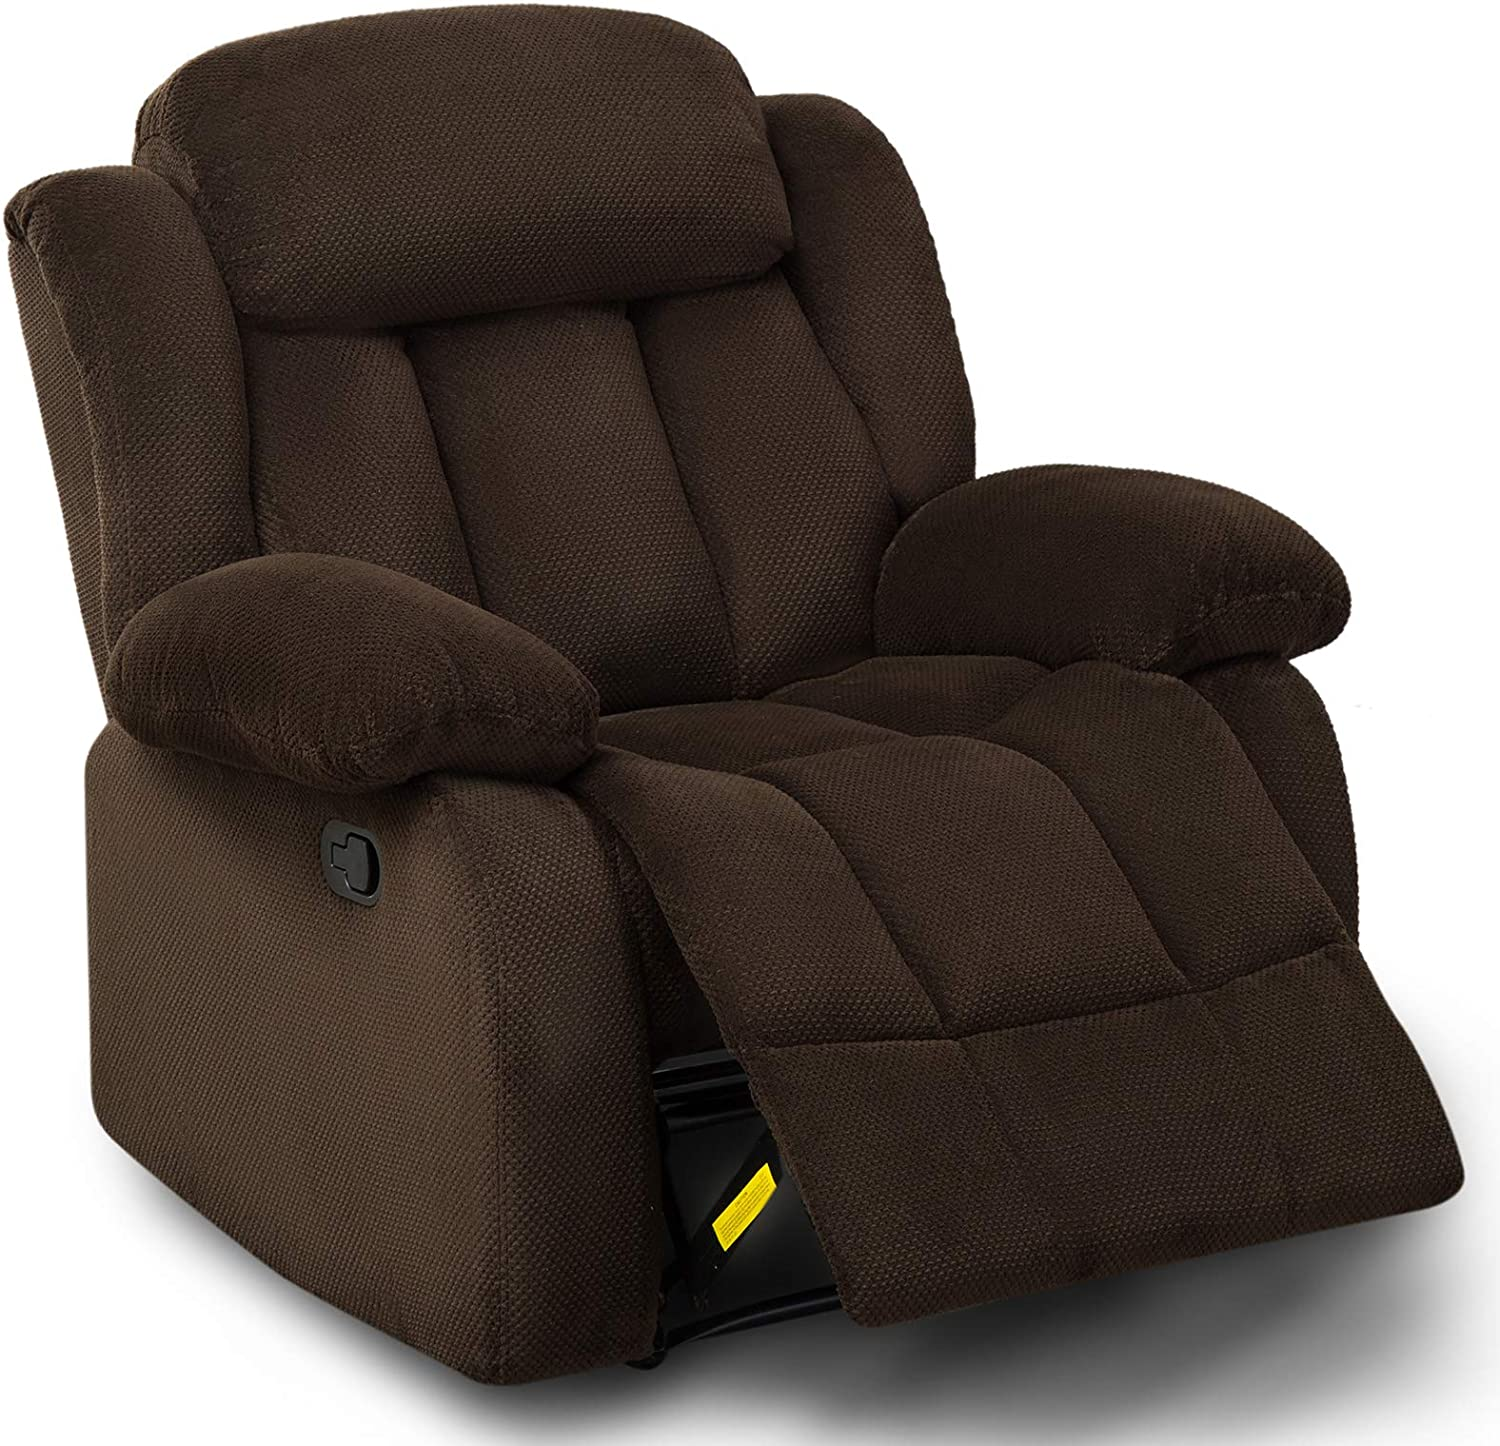 ANJ HOME Fabric Recliner Chair for Living Room,Overstuffed Single Sofa Home Theater Seating Lounge Chair (Brown)